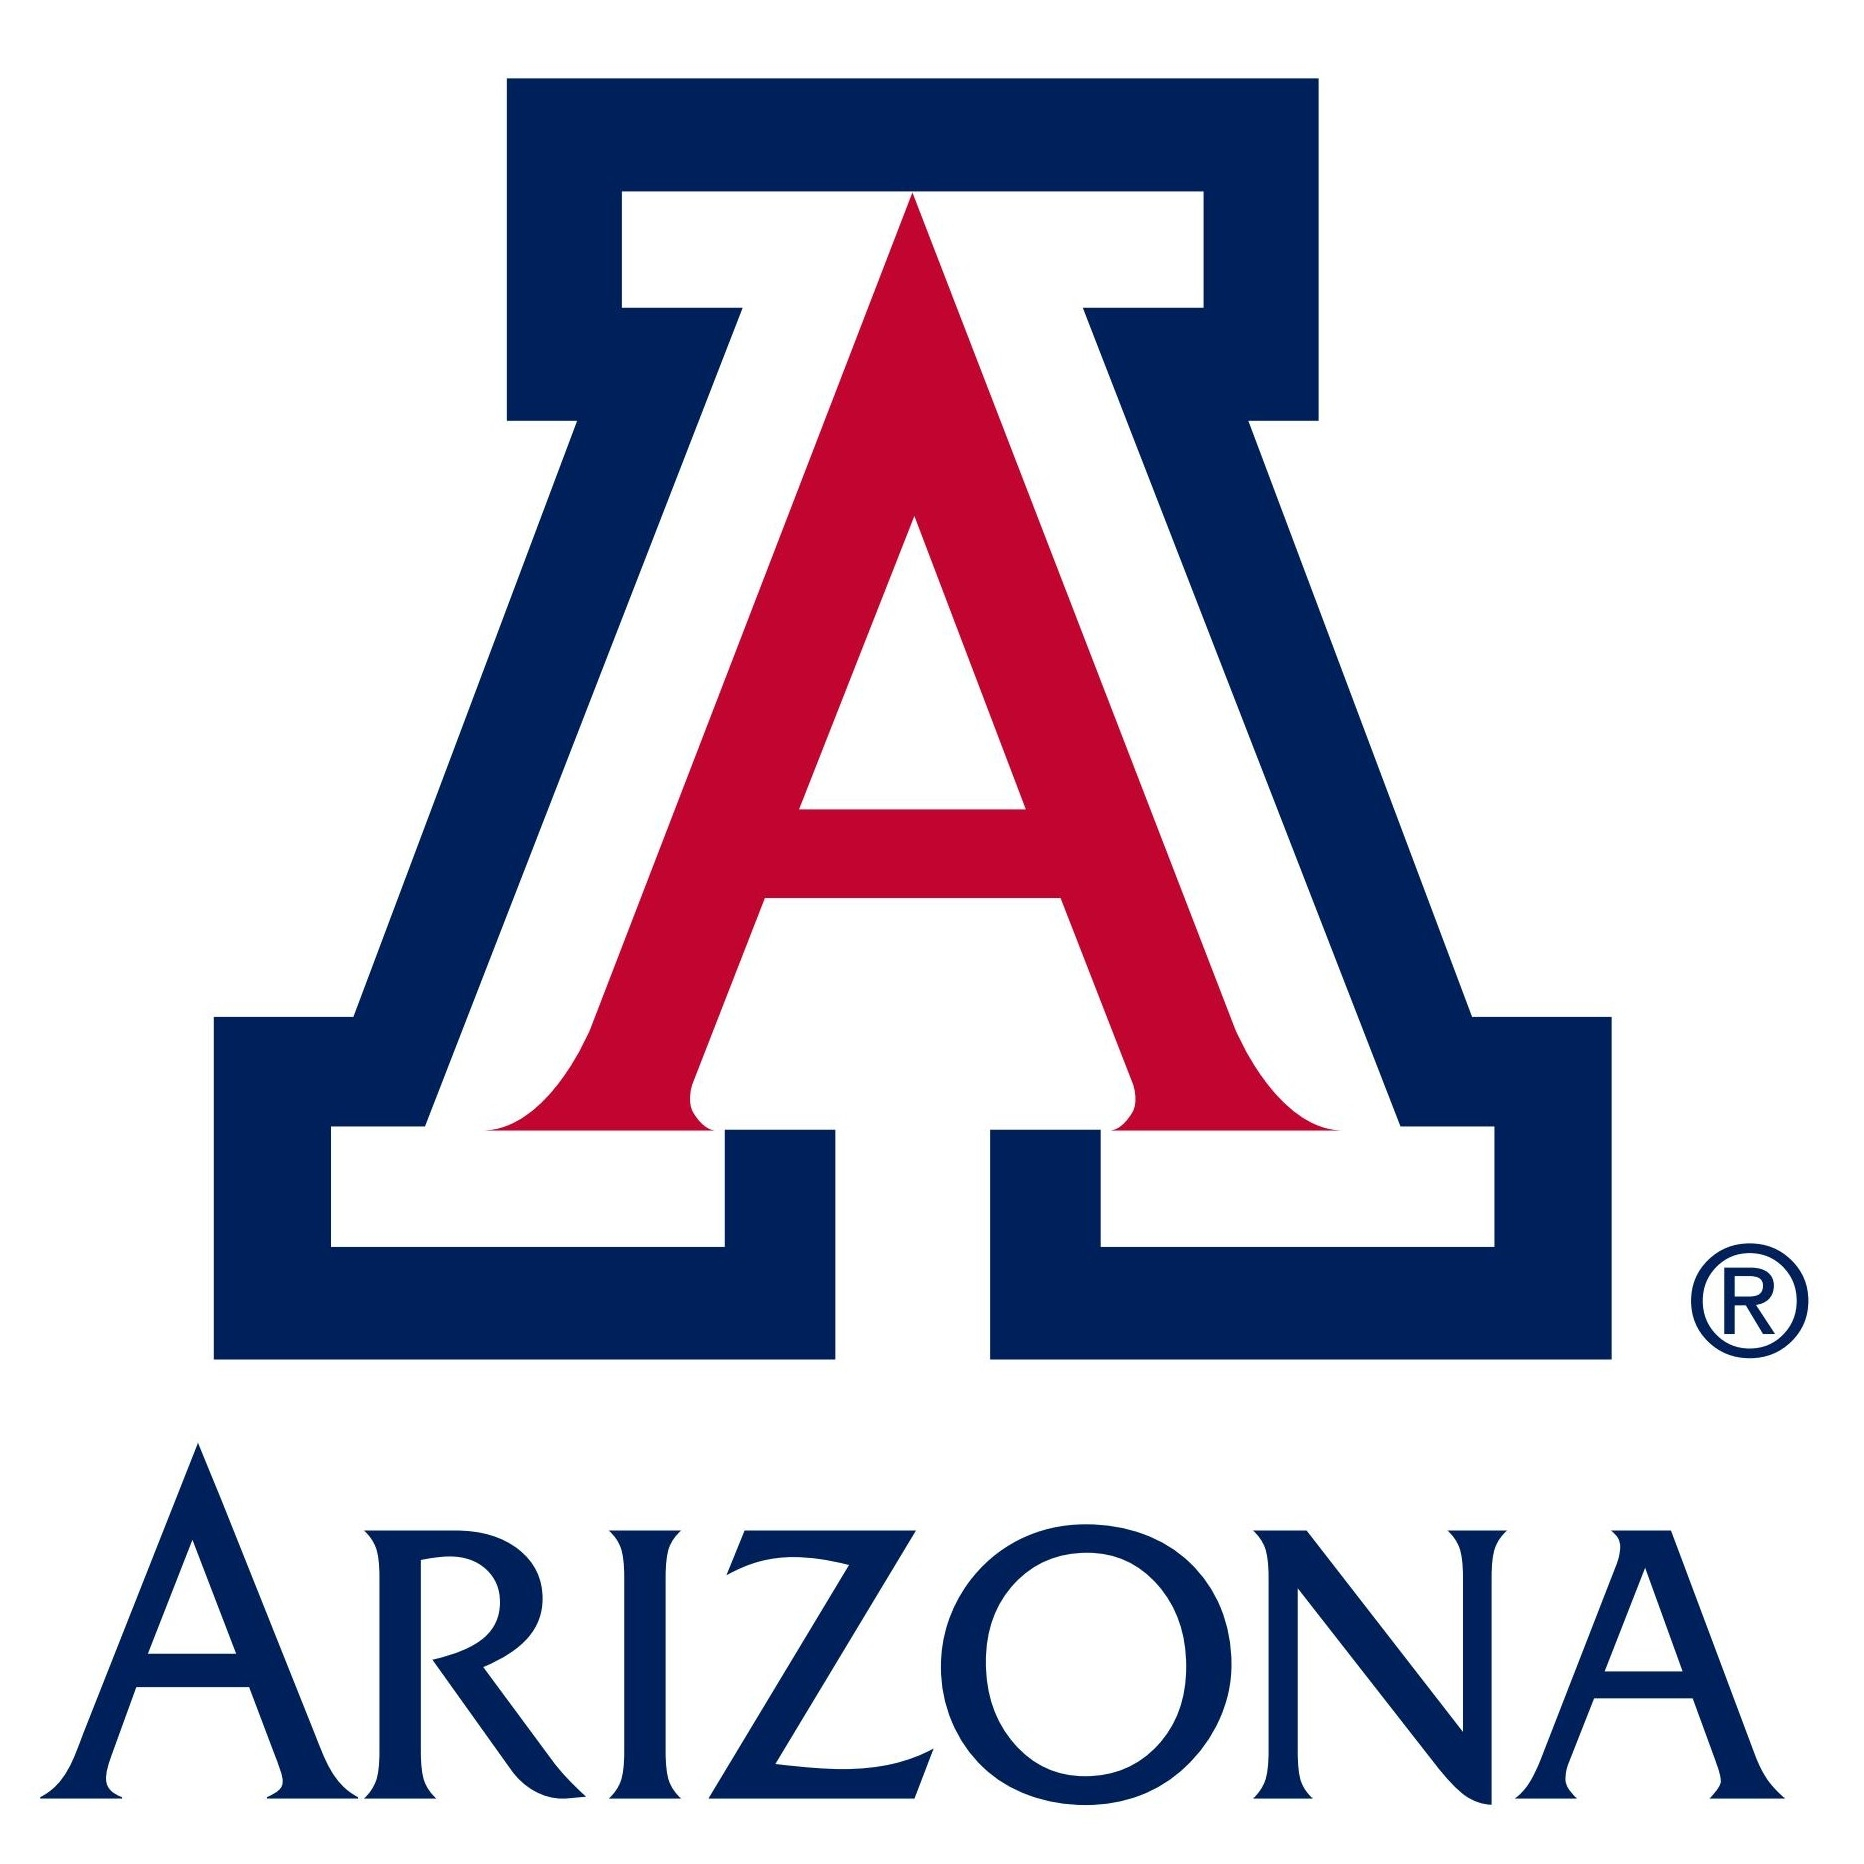 University of Arizona - Ken Iida ⛳Peter Koo ✍ ⛳Brad Nicholson ⛳